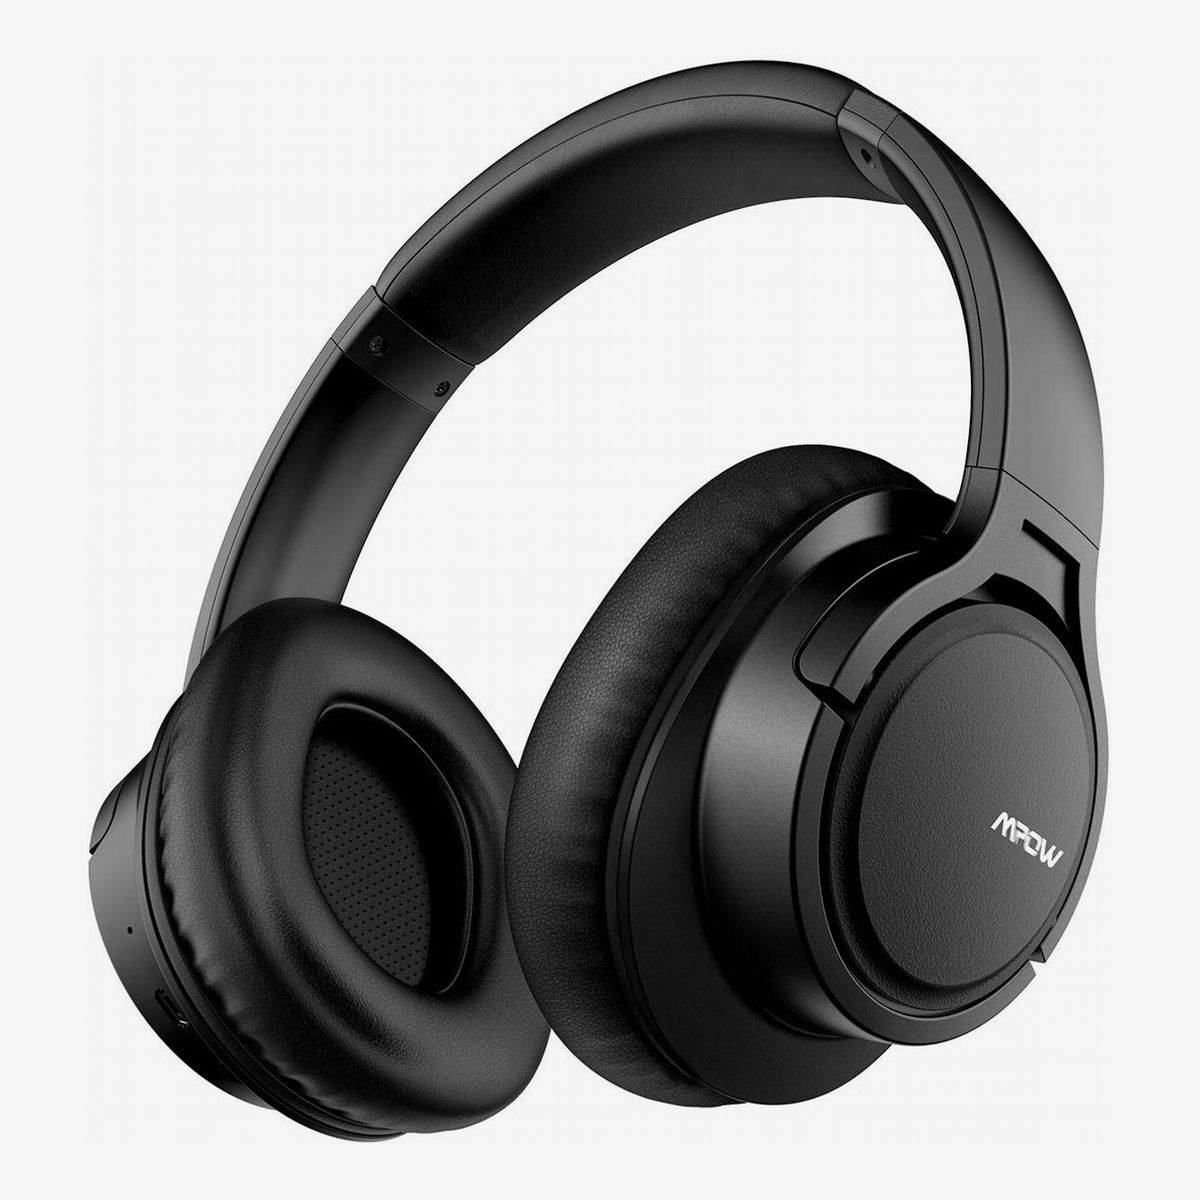 15 Best Wireless Bluetooth Headphones 2020 The Strategist New York Magazine